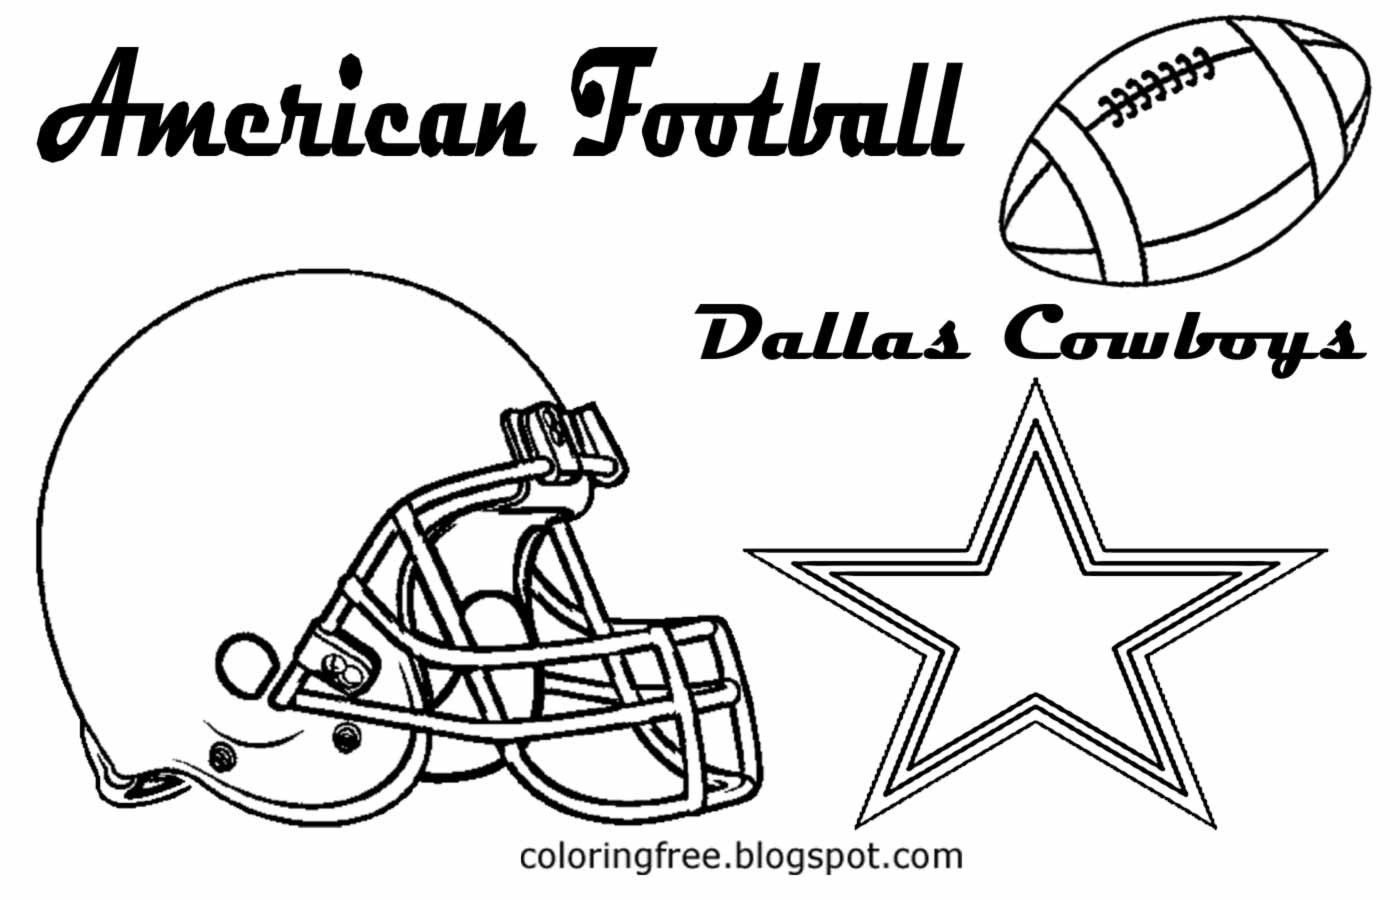 Printable American Football Coloring Coloring Pages To Print Dallas Cowboys Free Coloring Pages